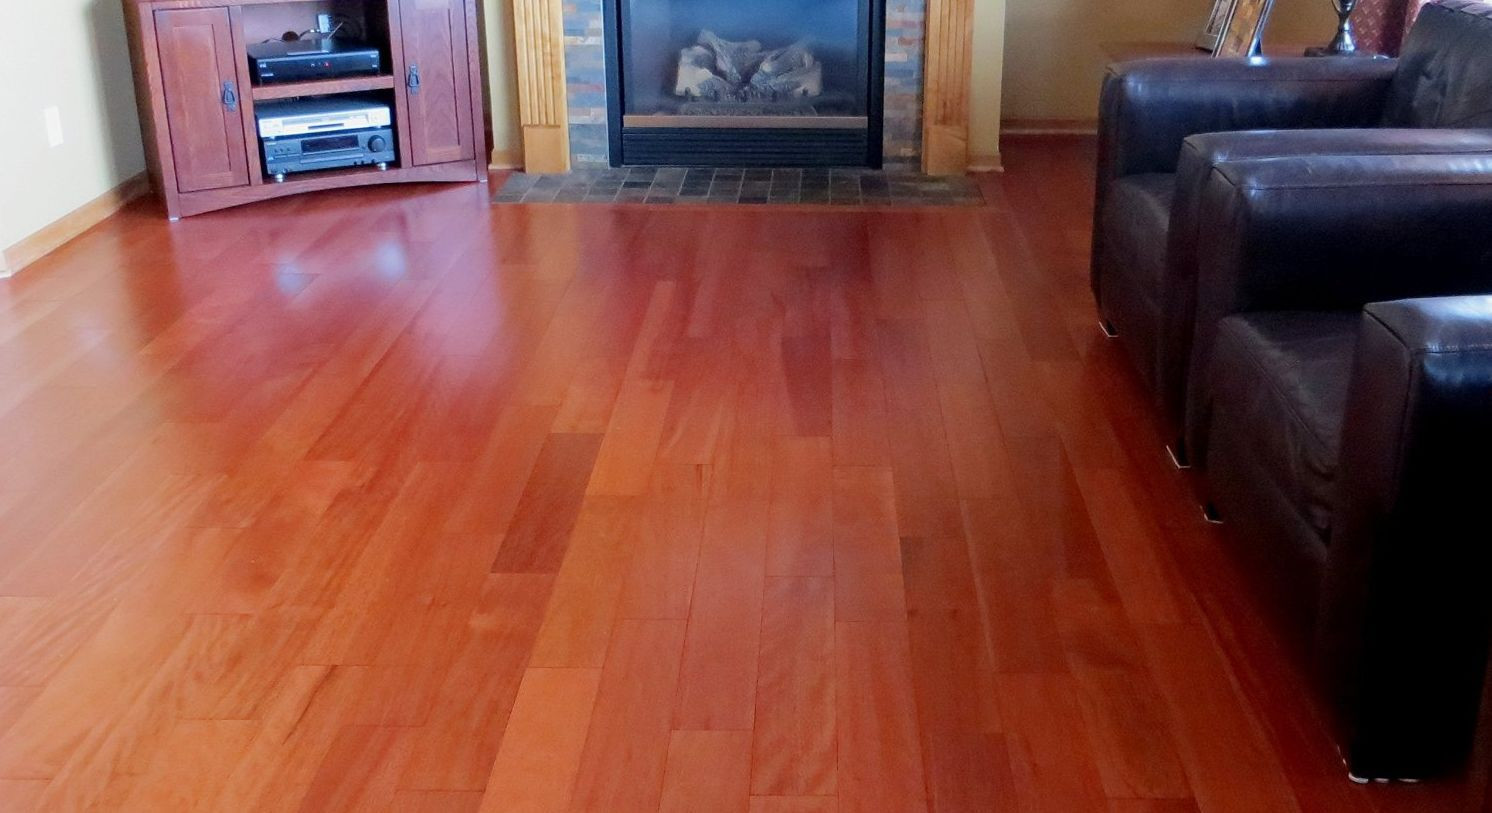 exotic hardwood flooring prices of malaccan cherry vs brazilian cherry flooring within malaccan cherry or taun wood plank flooring 56a4a14f5f9b58b7d0d7e61b jpg